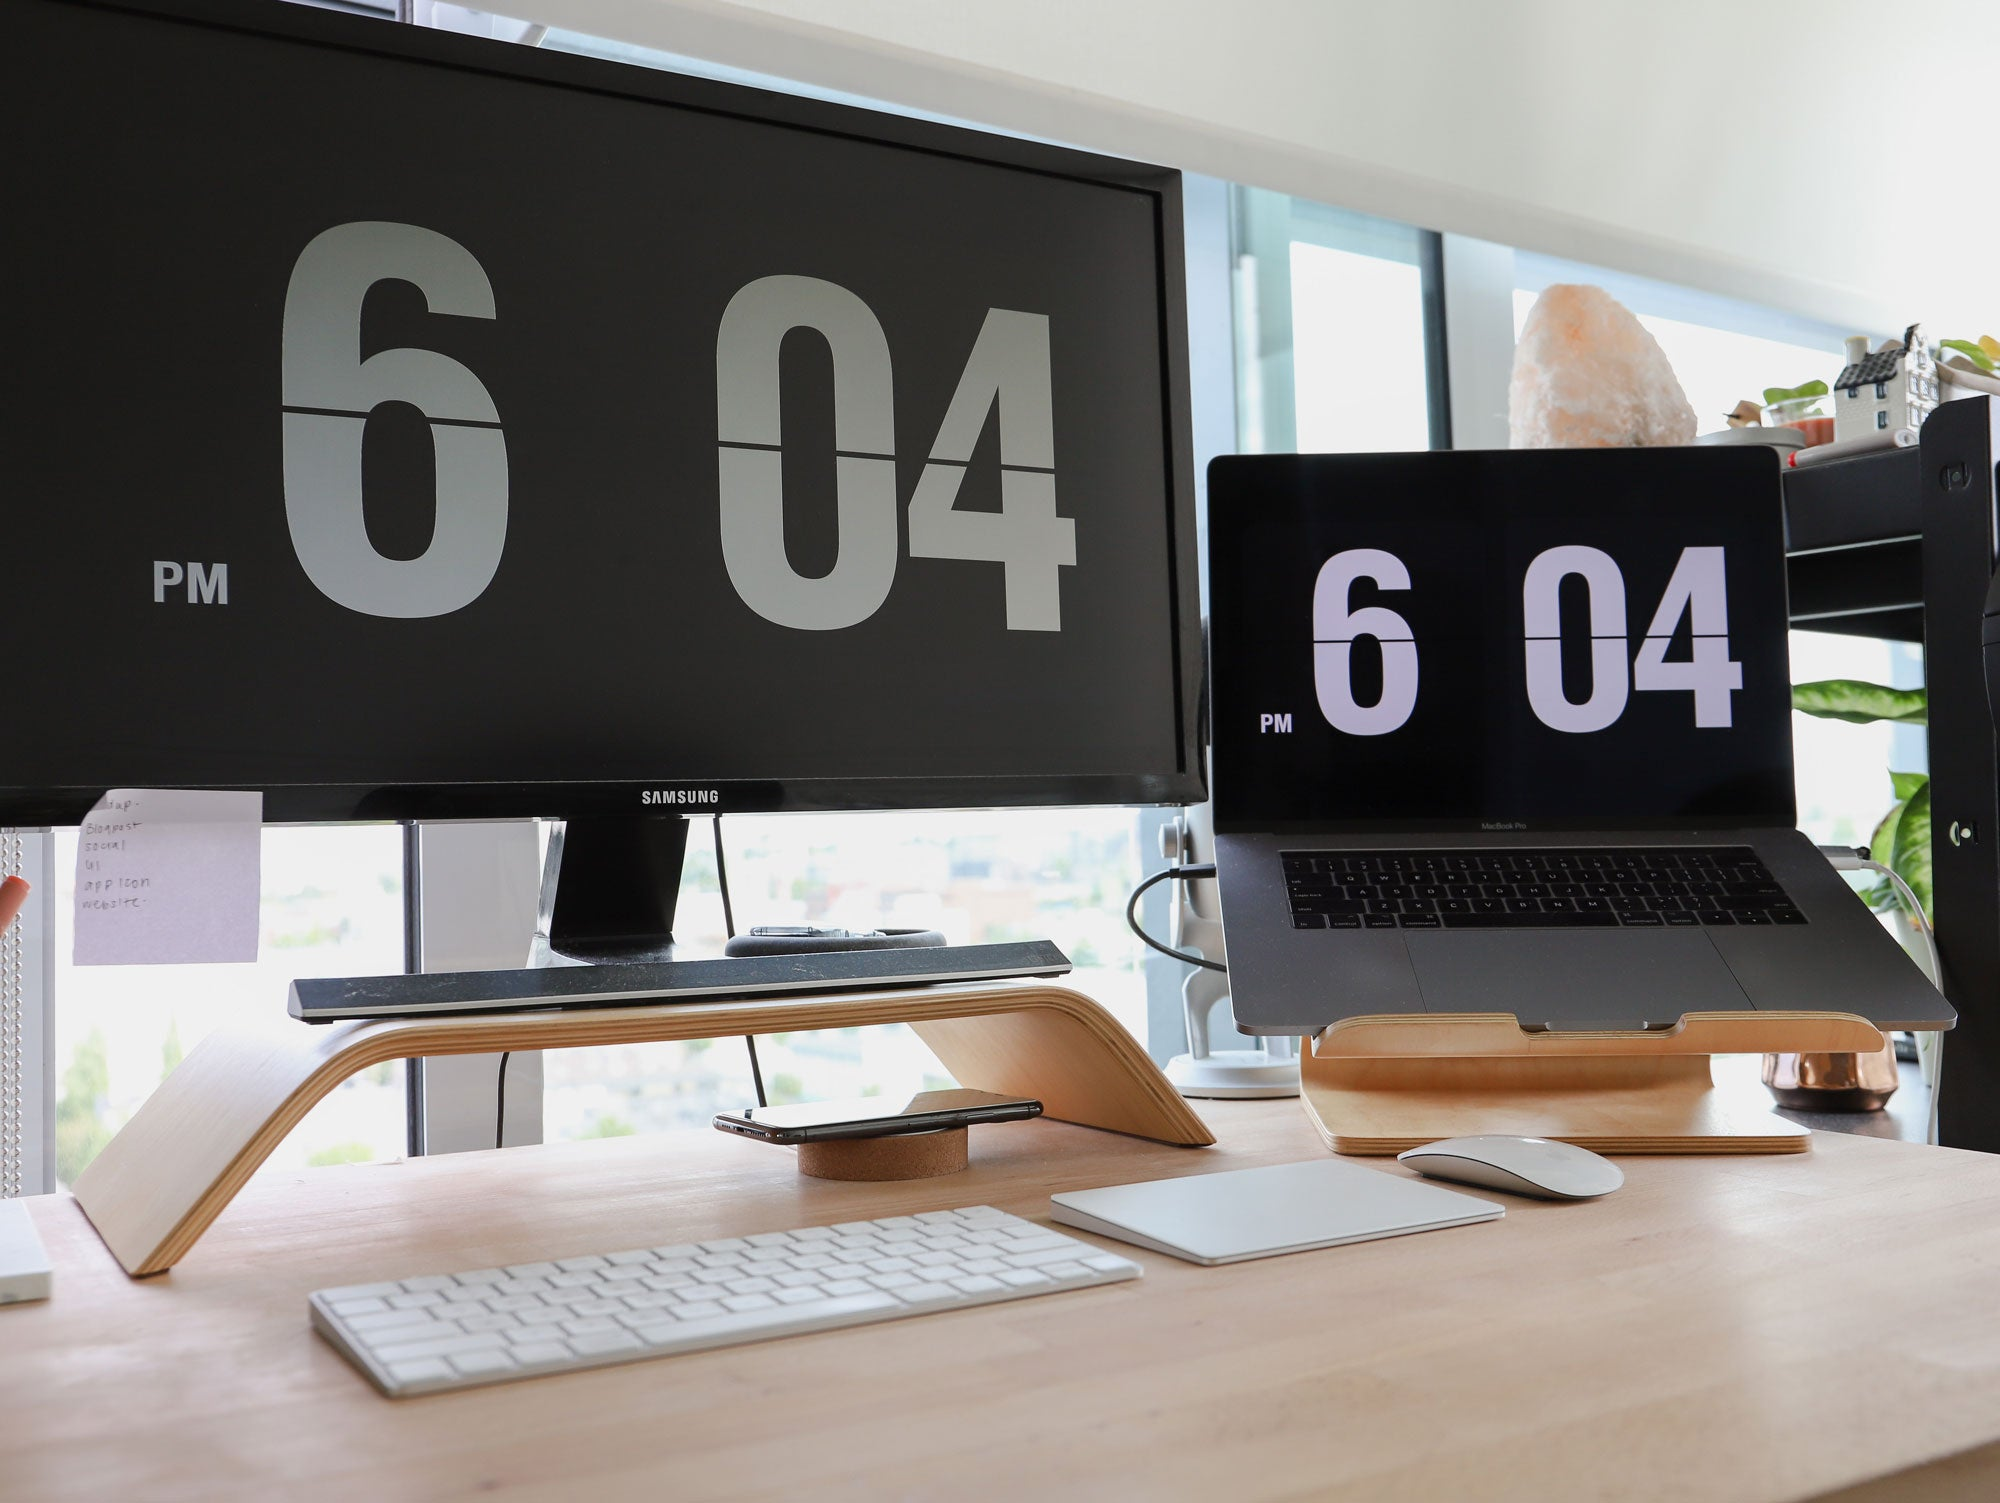 How to stay organized when working from home